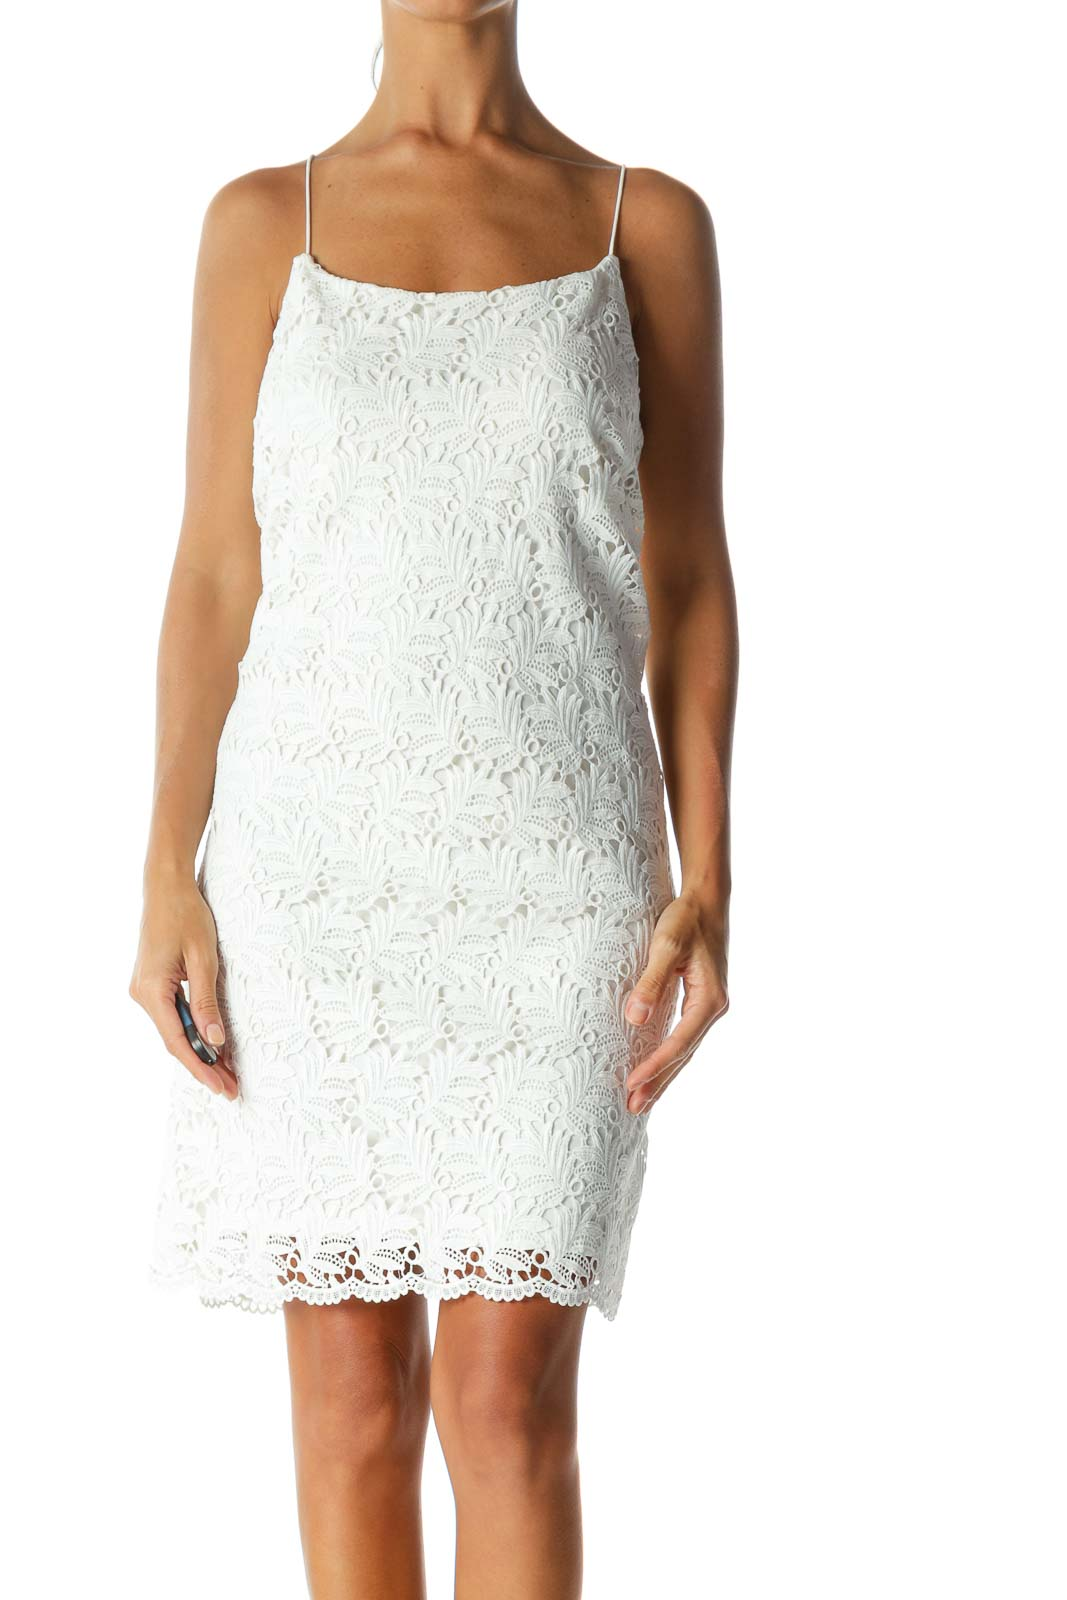 White Lace Body Knit Lined Day Dress